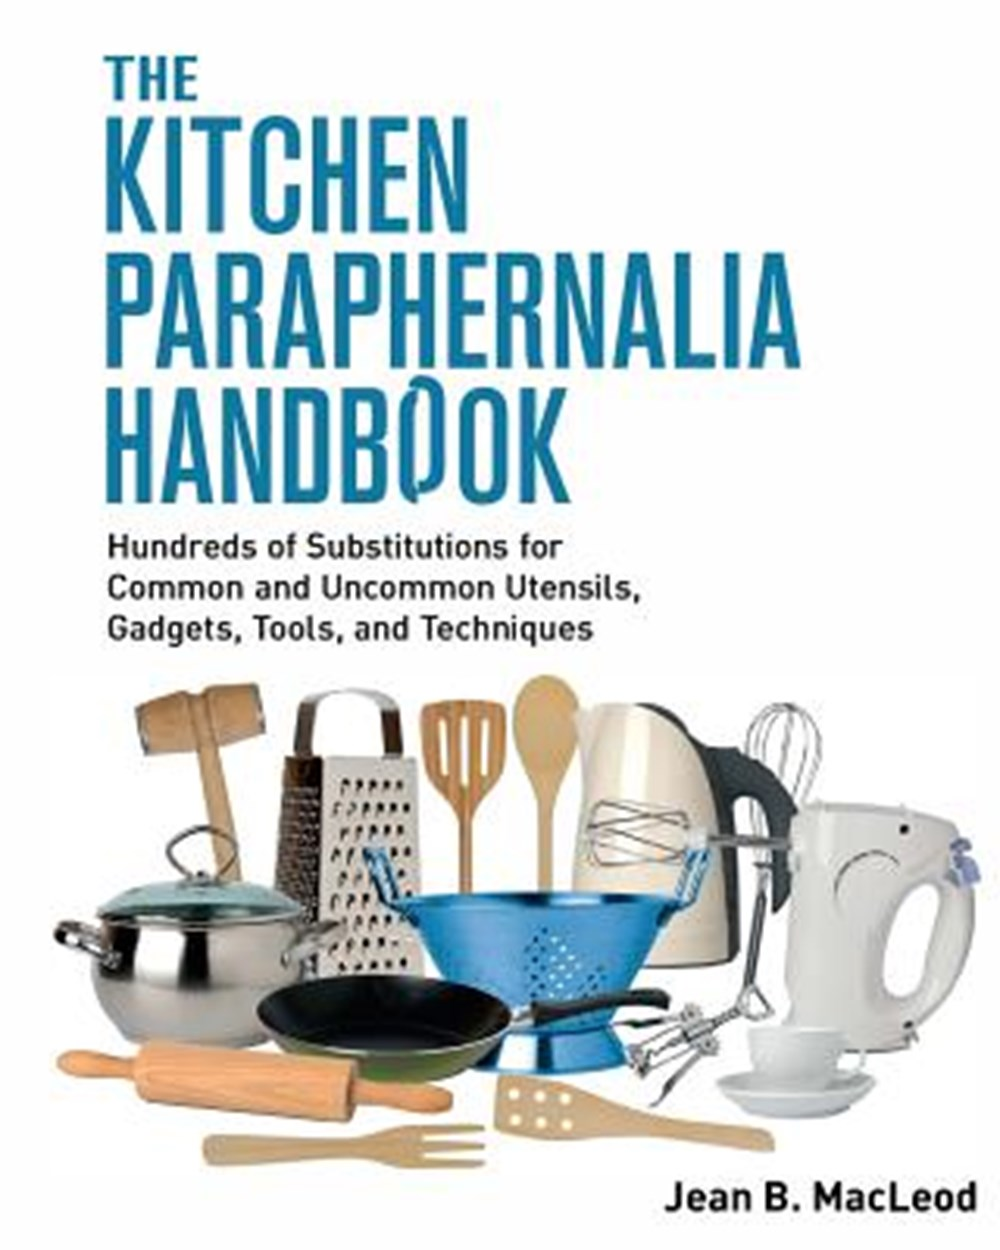 Kitchen Paraphernalia Handbook Hundreds of Substitutions for Common and Uncommon Utensils, Gadgets,